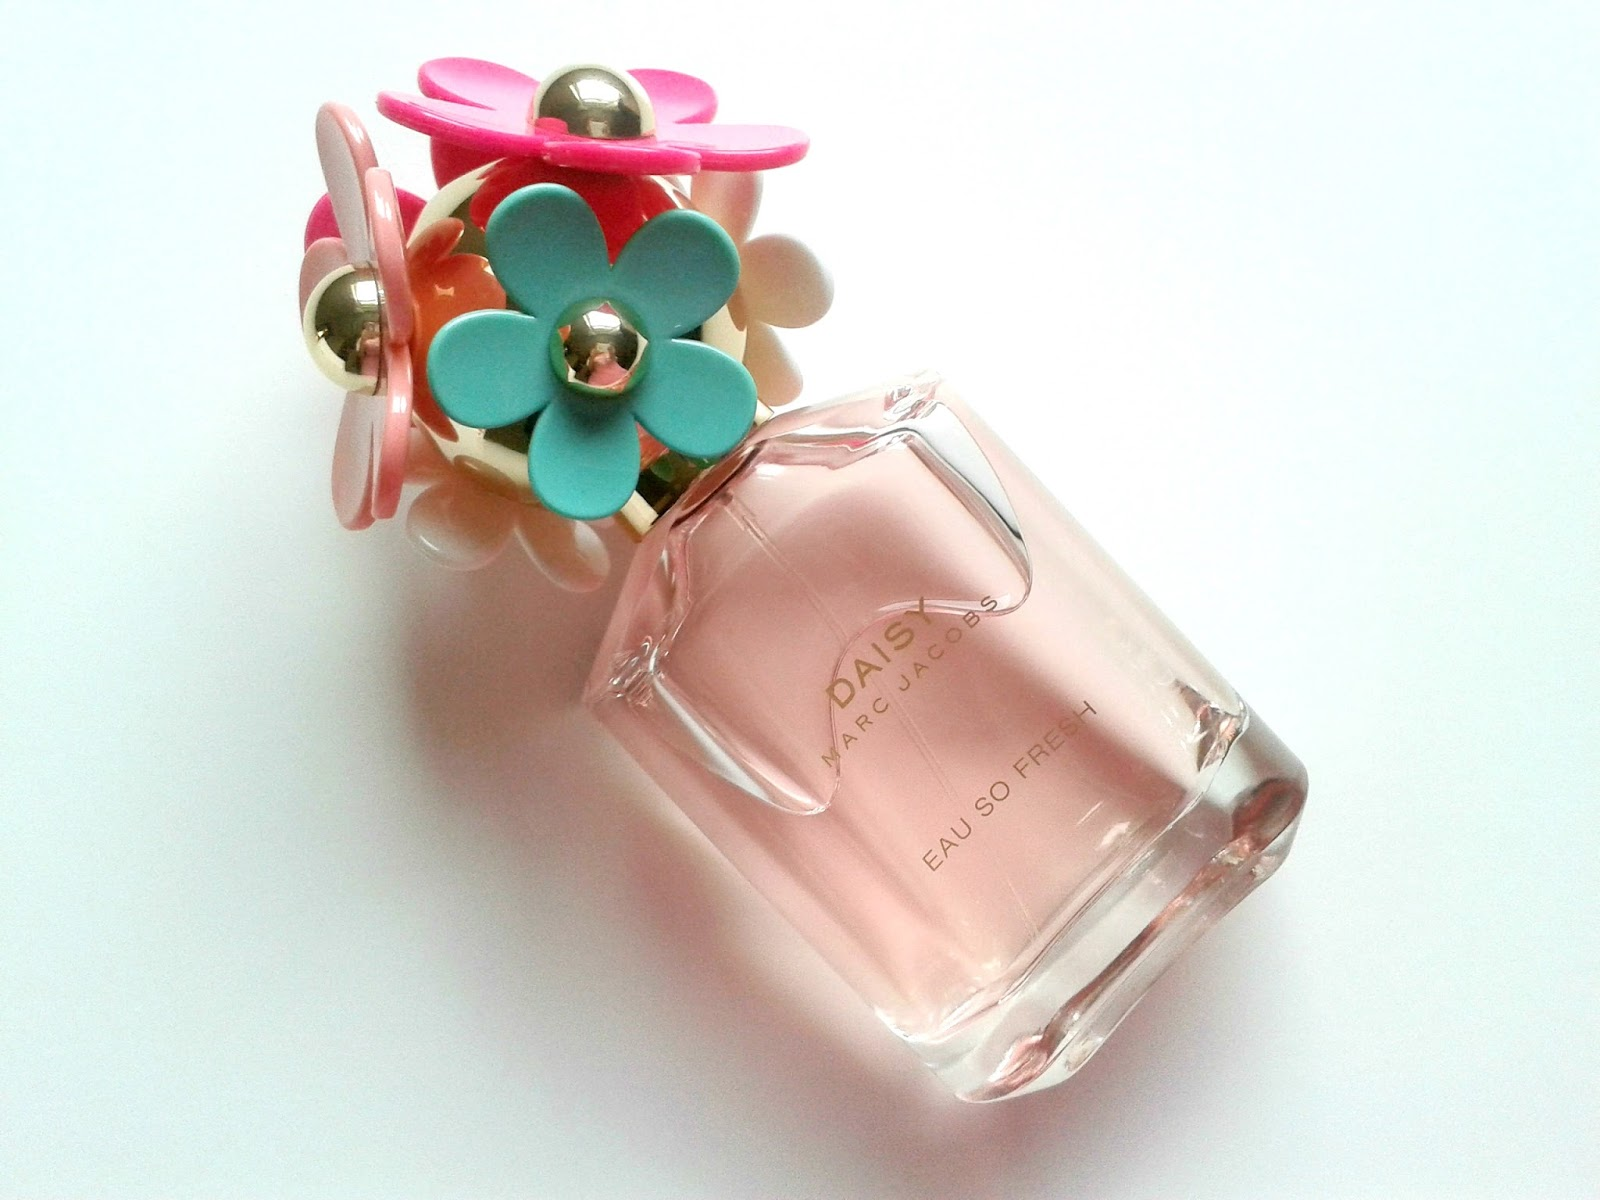 Marc Jacobs Daisy Eau So Fresh Delight EDT Beauty Review Bottle